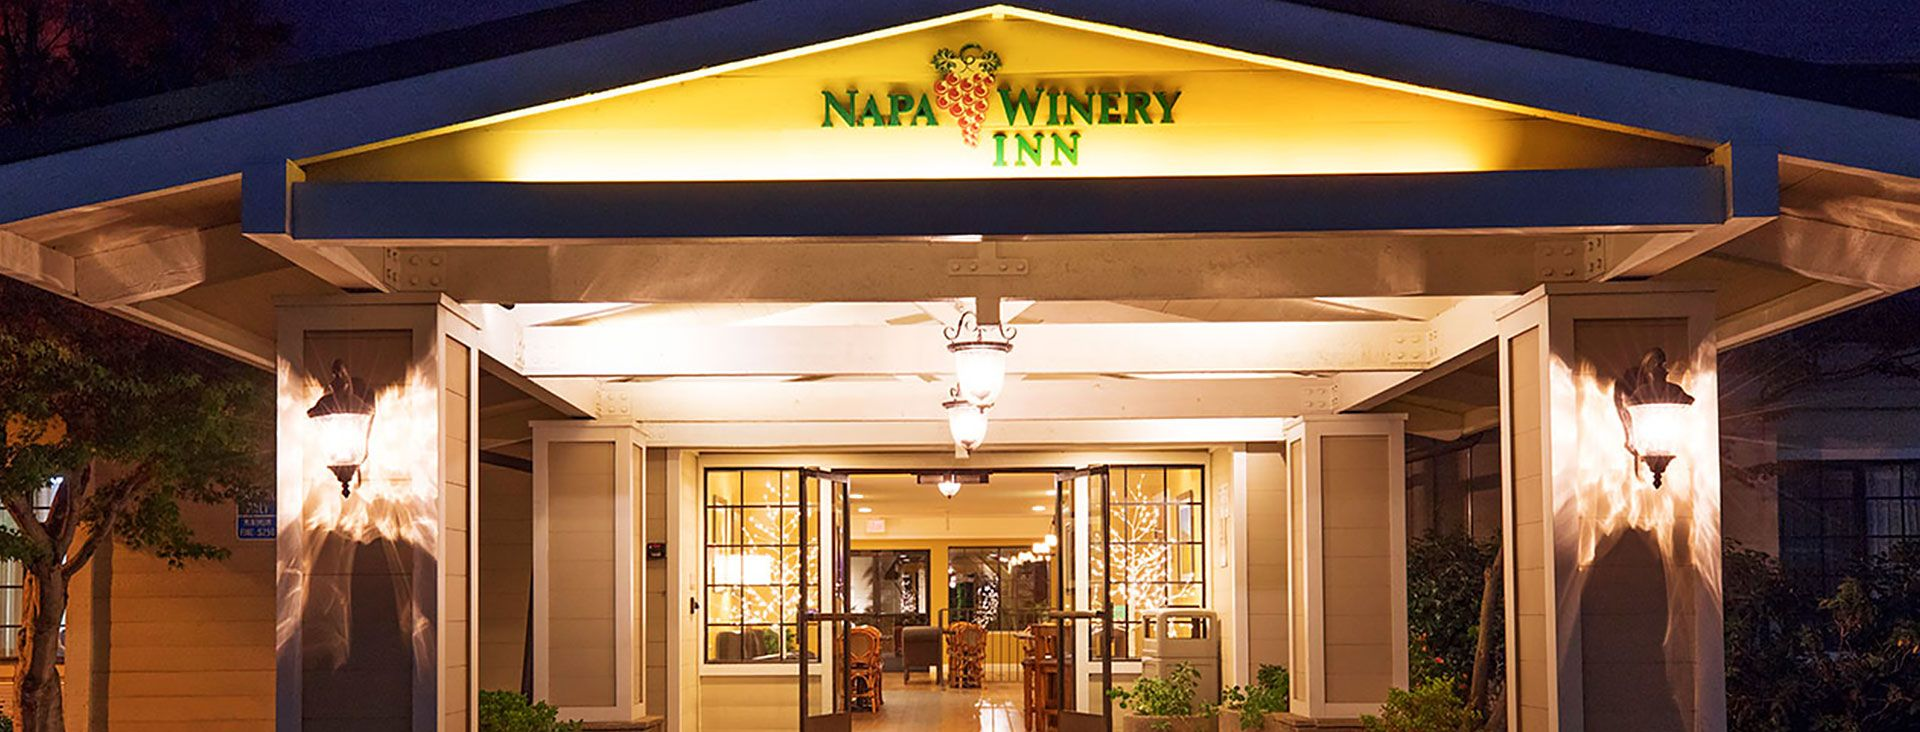 Napa Winery Inn Hotel Entrance